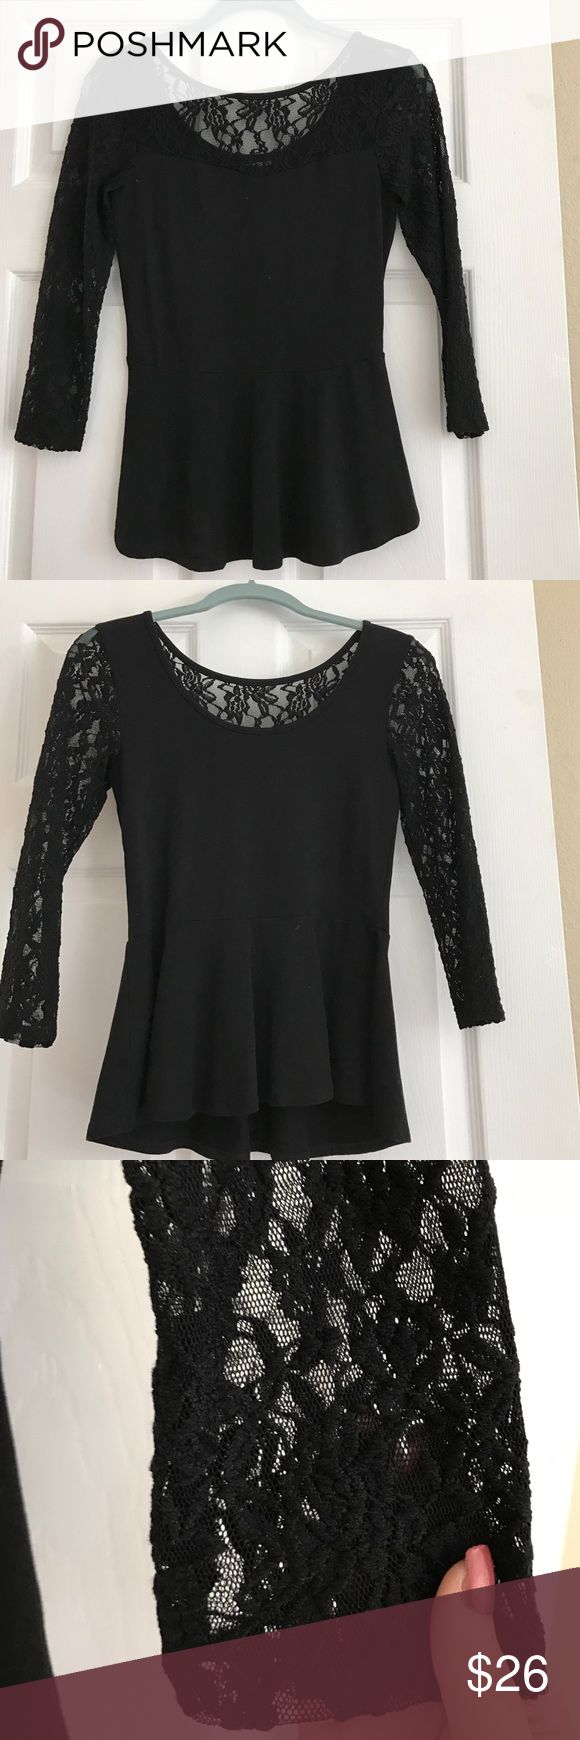 Lace Peplum Top NWOT / Sexy Black Lace/ Slimming Peplum Blouse Tops